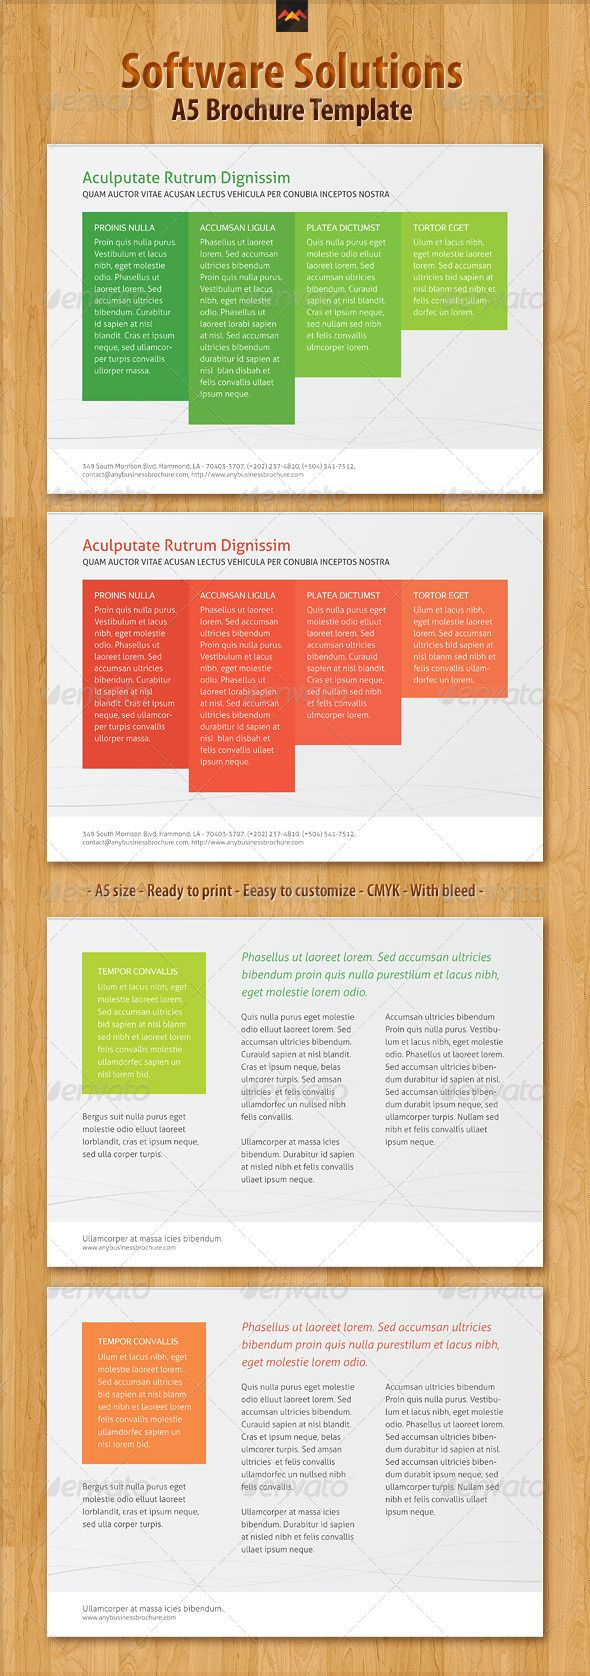 17 best images about print templates on pinterest the for Brochure templates for photoshop cs5